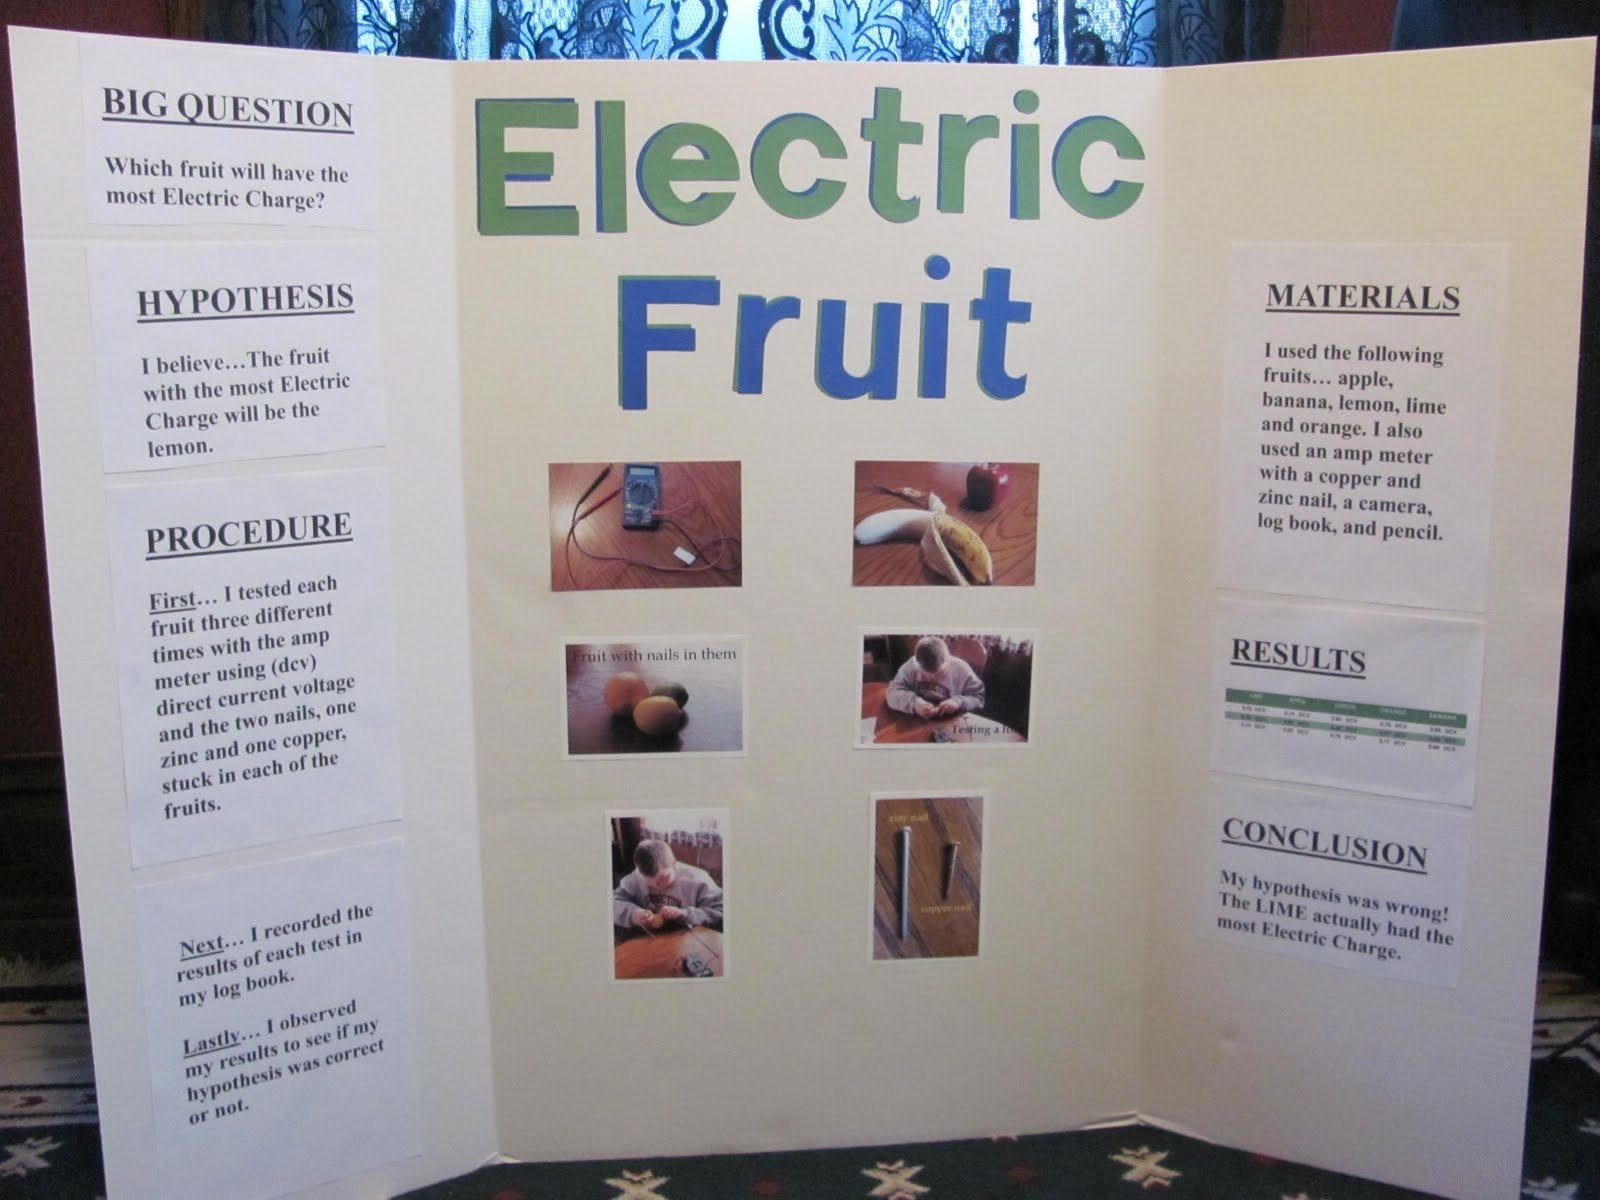 10 Stunning Science Fair Project Ideas For 6Th Graders science fair projects he estimated the lemon would but actually 17